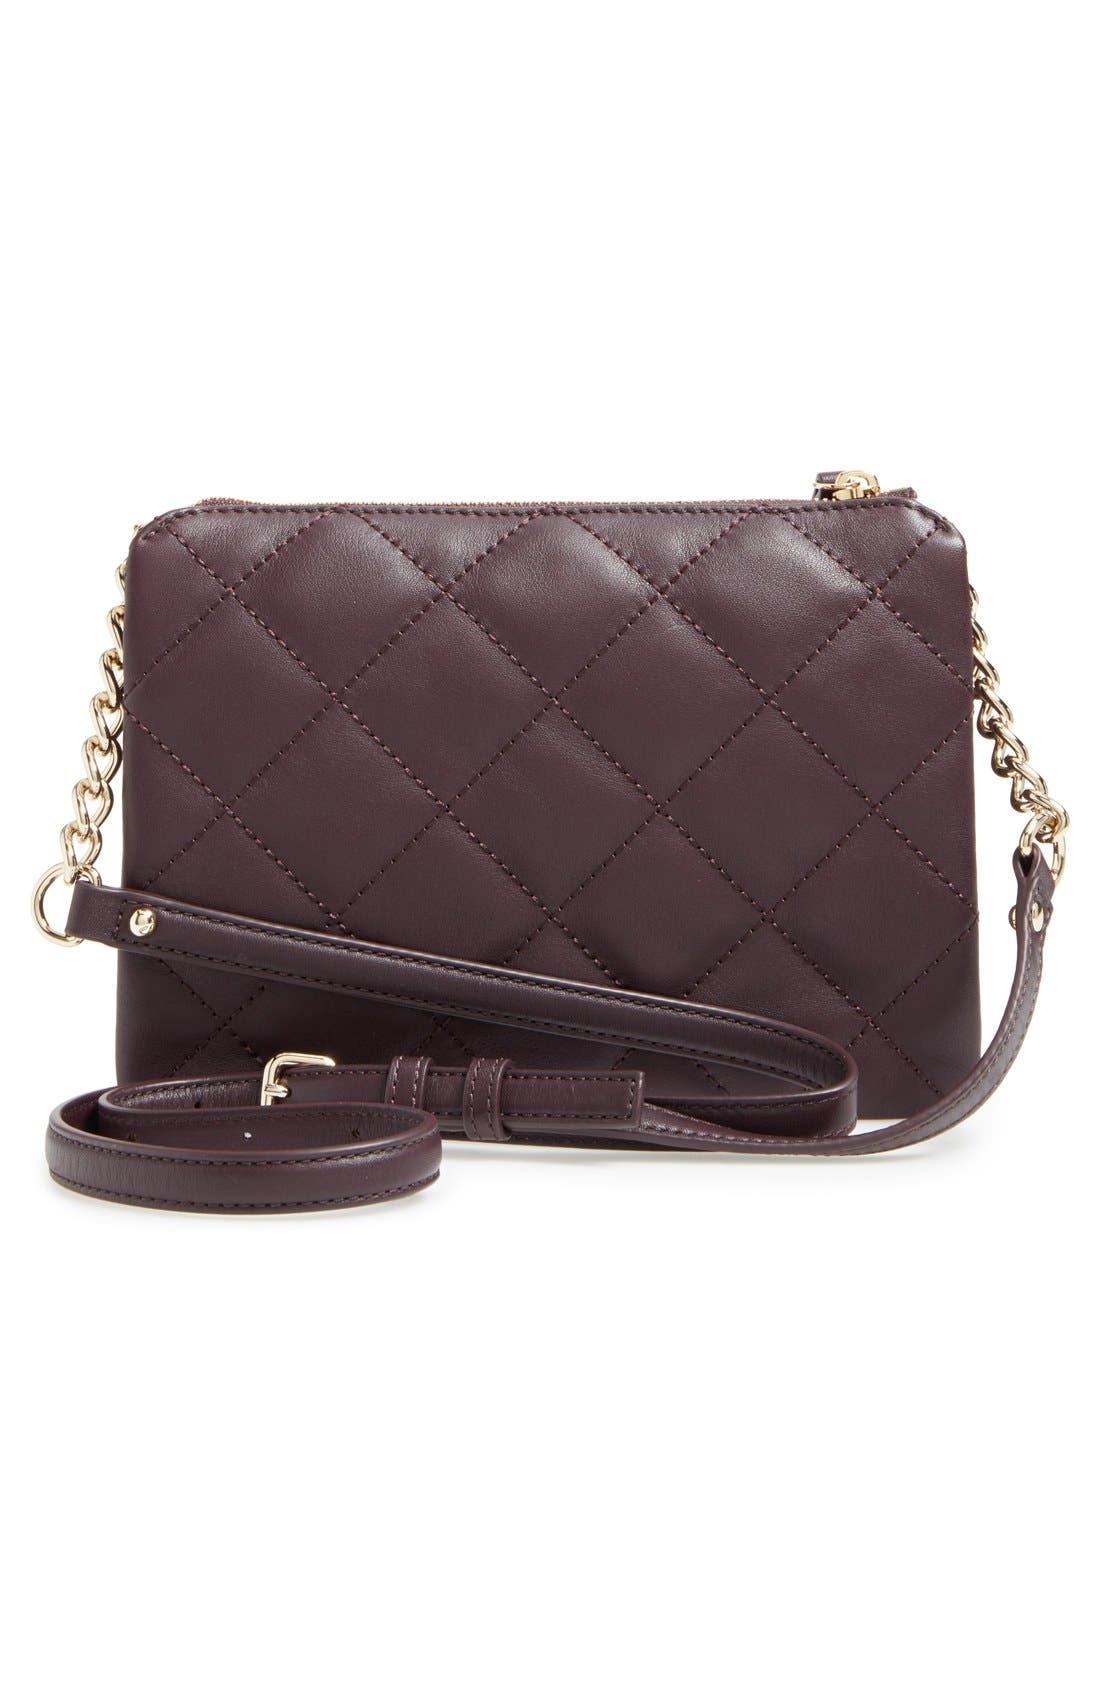 emerson place harbor leather crossbody bag,                             Alternate thumbnail 25, color,